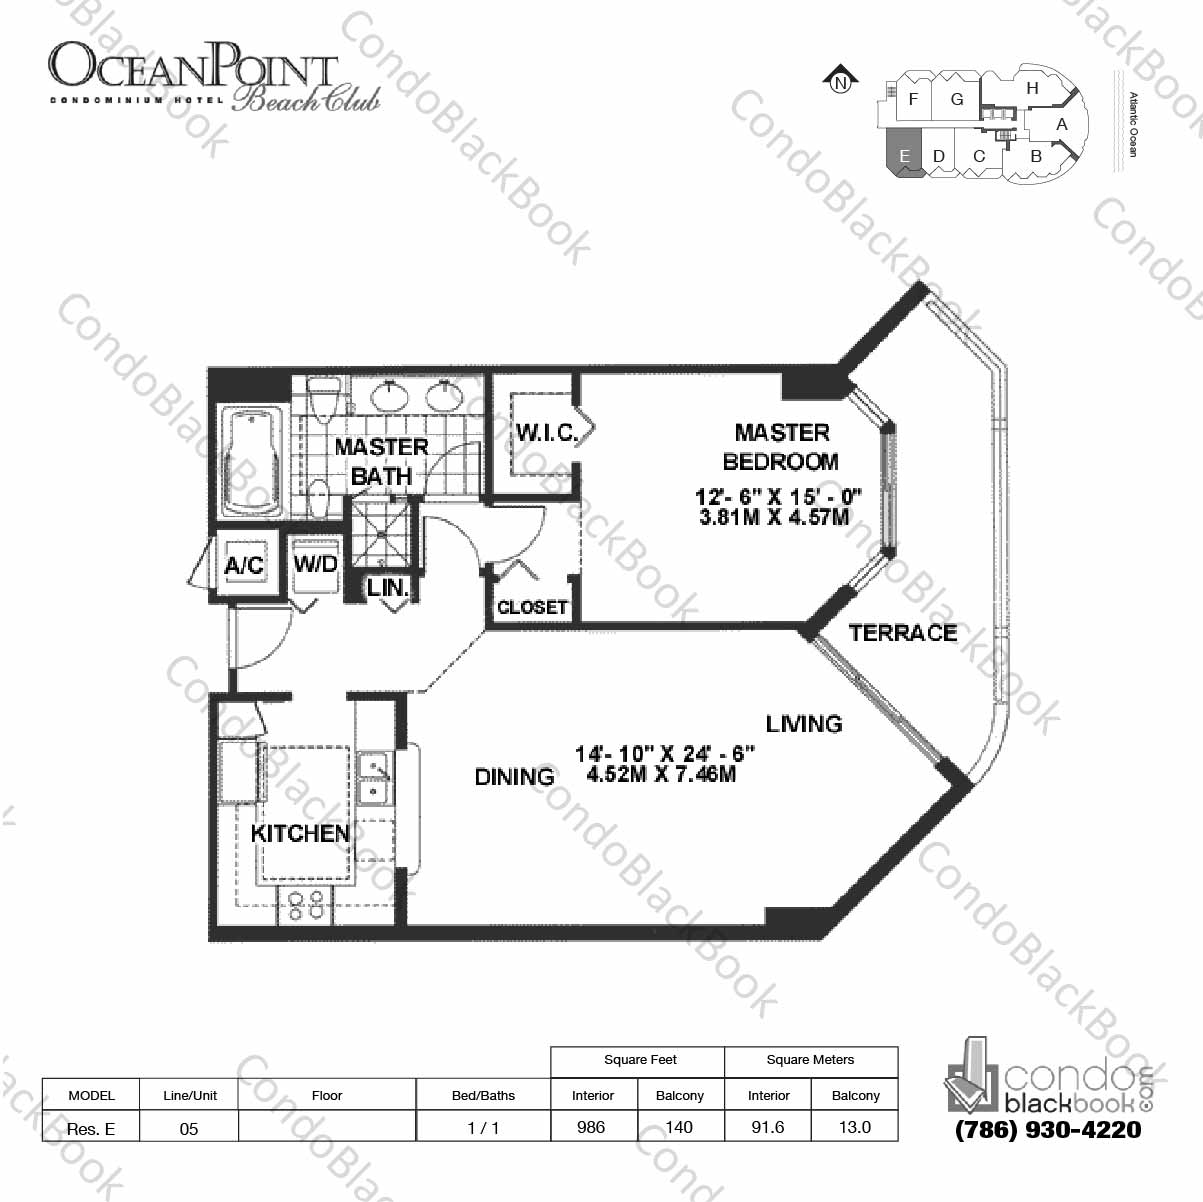 Floor plan for Ocean Point Beach Club Sunny Isles Beach, model Res. E, line 05, 1 / 1 bedrooms, 986 sq ft